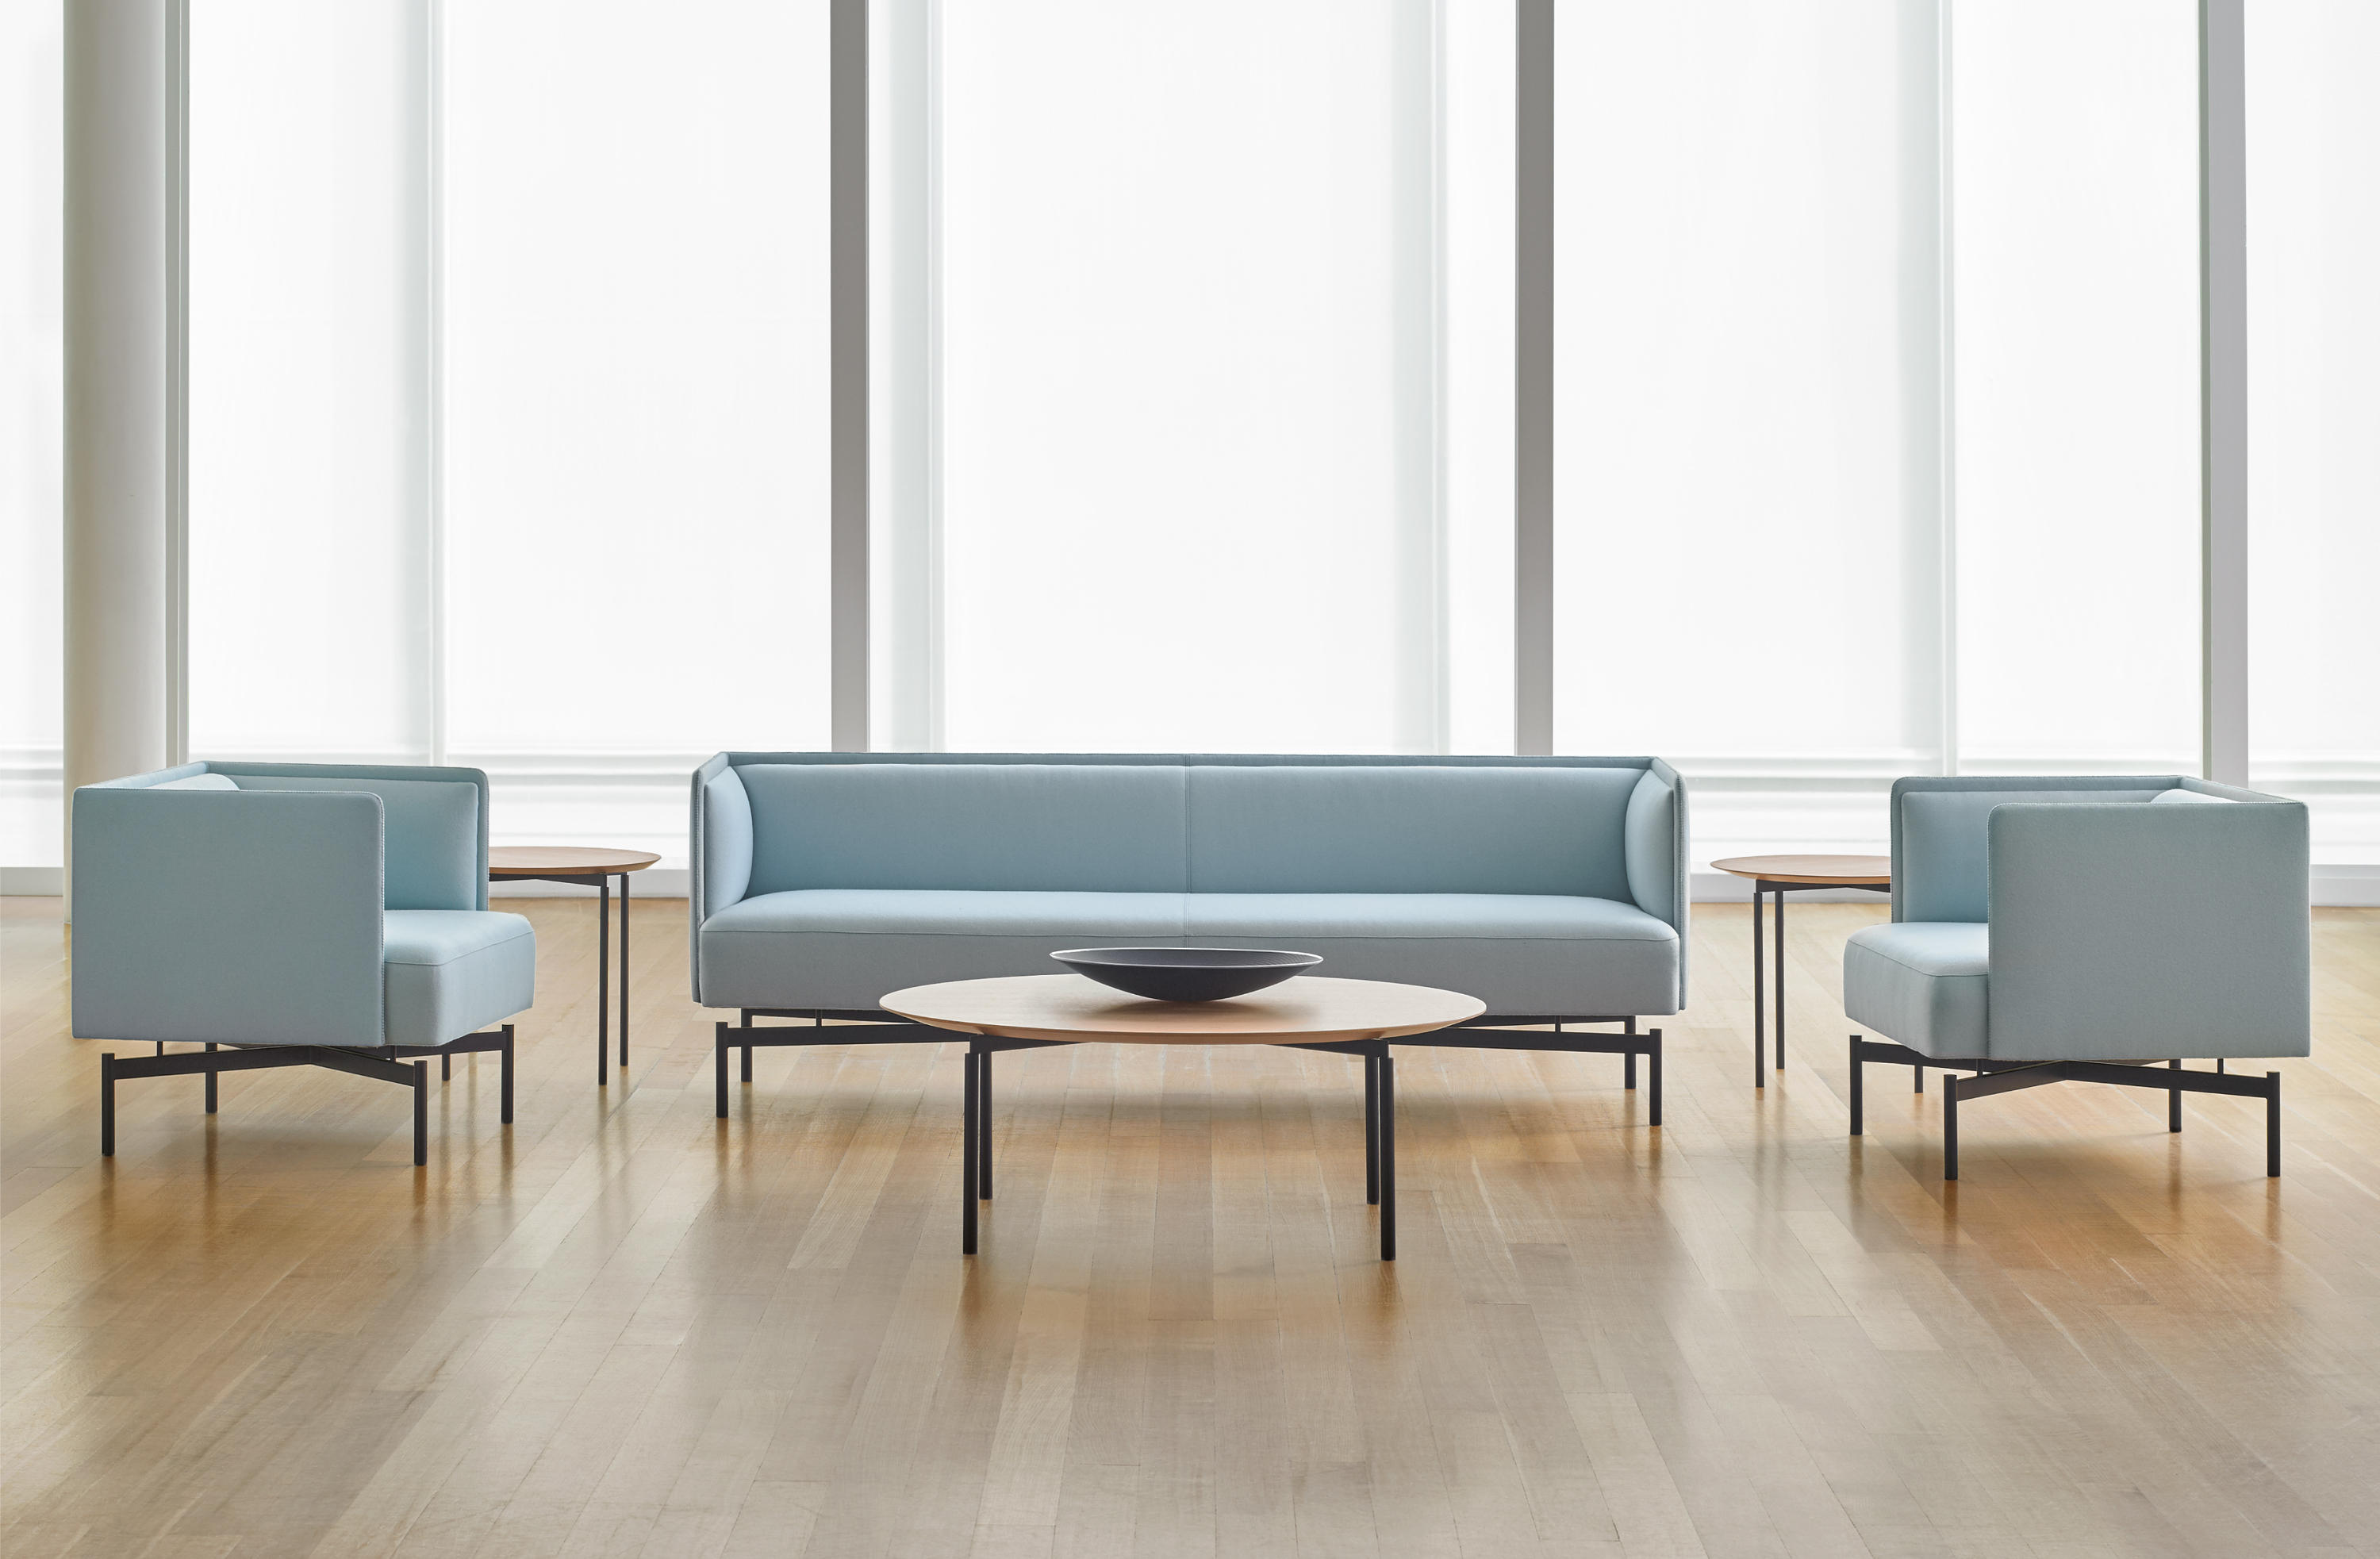 Astounding Finale Seating Collection By Charles Pollock For Bernhardt Interior Design Ideas Ghosoteloinfo